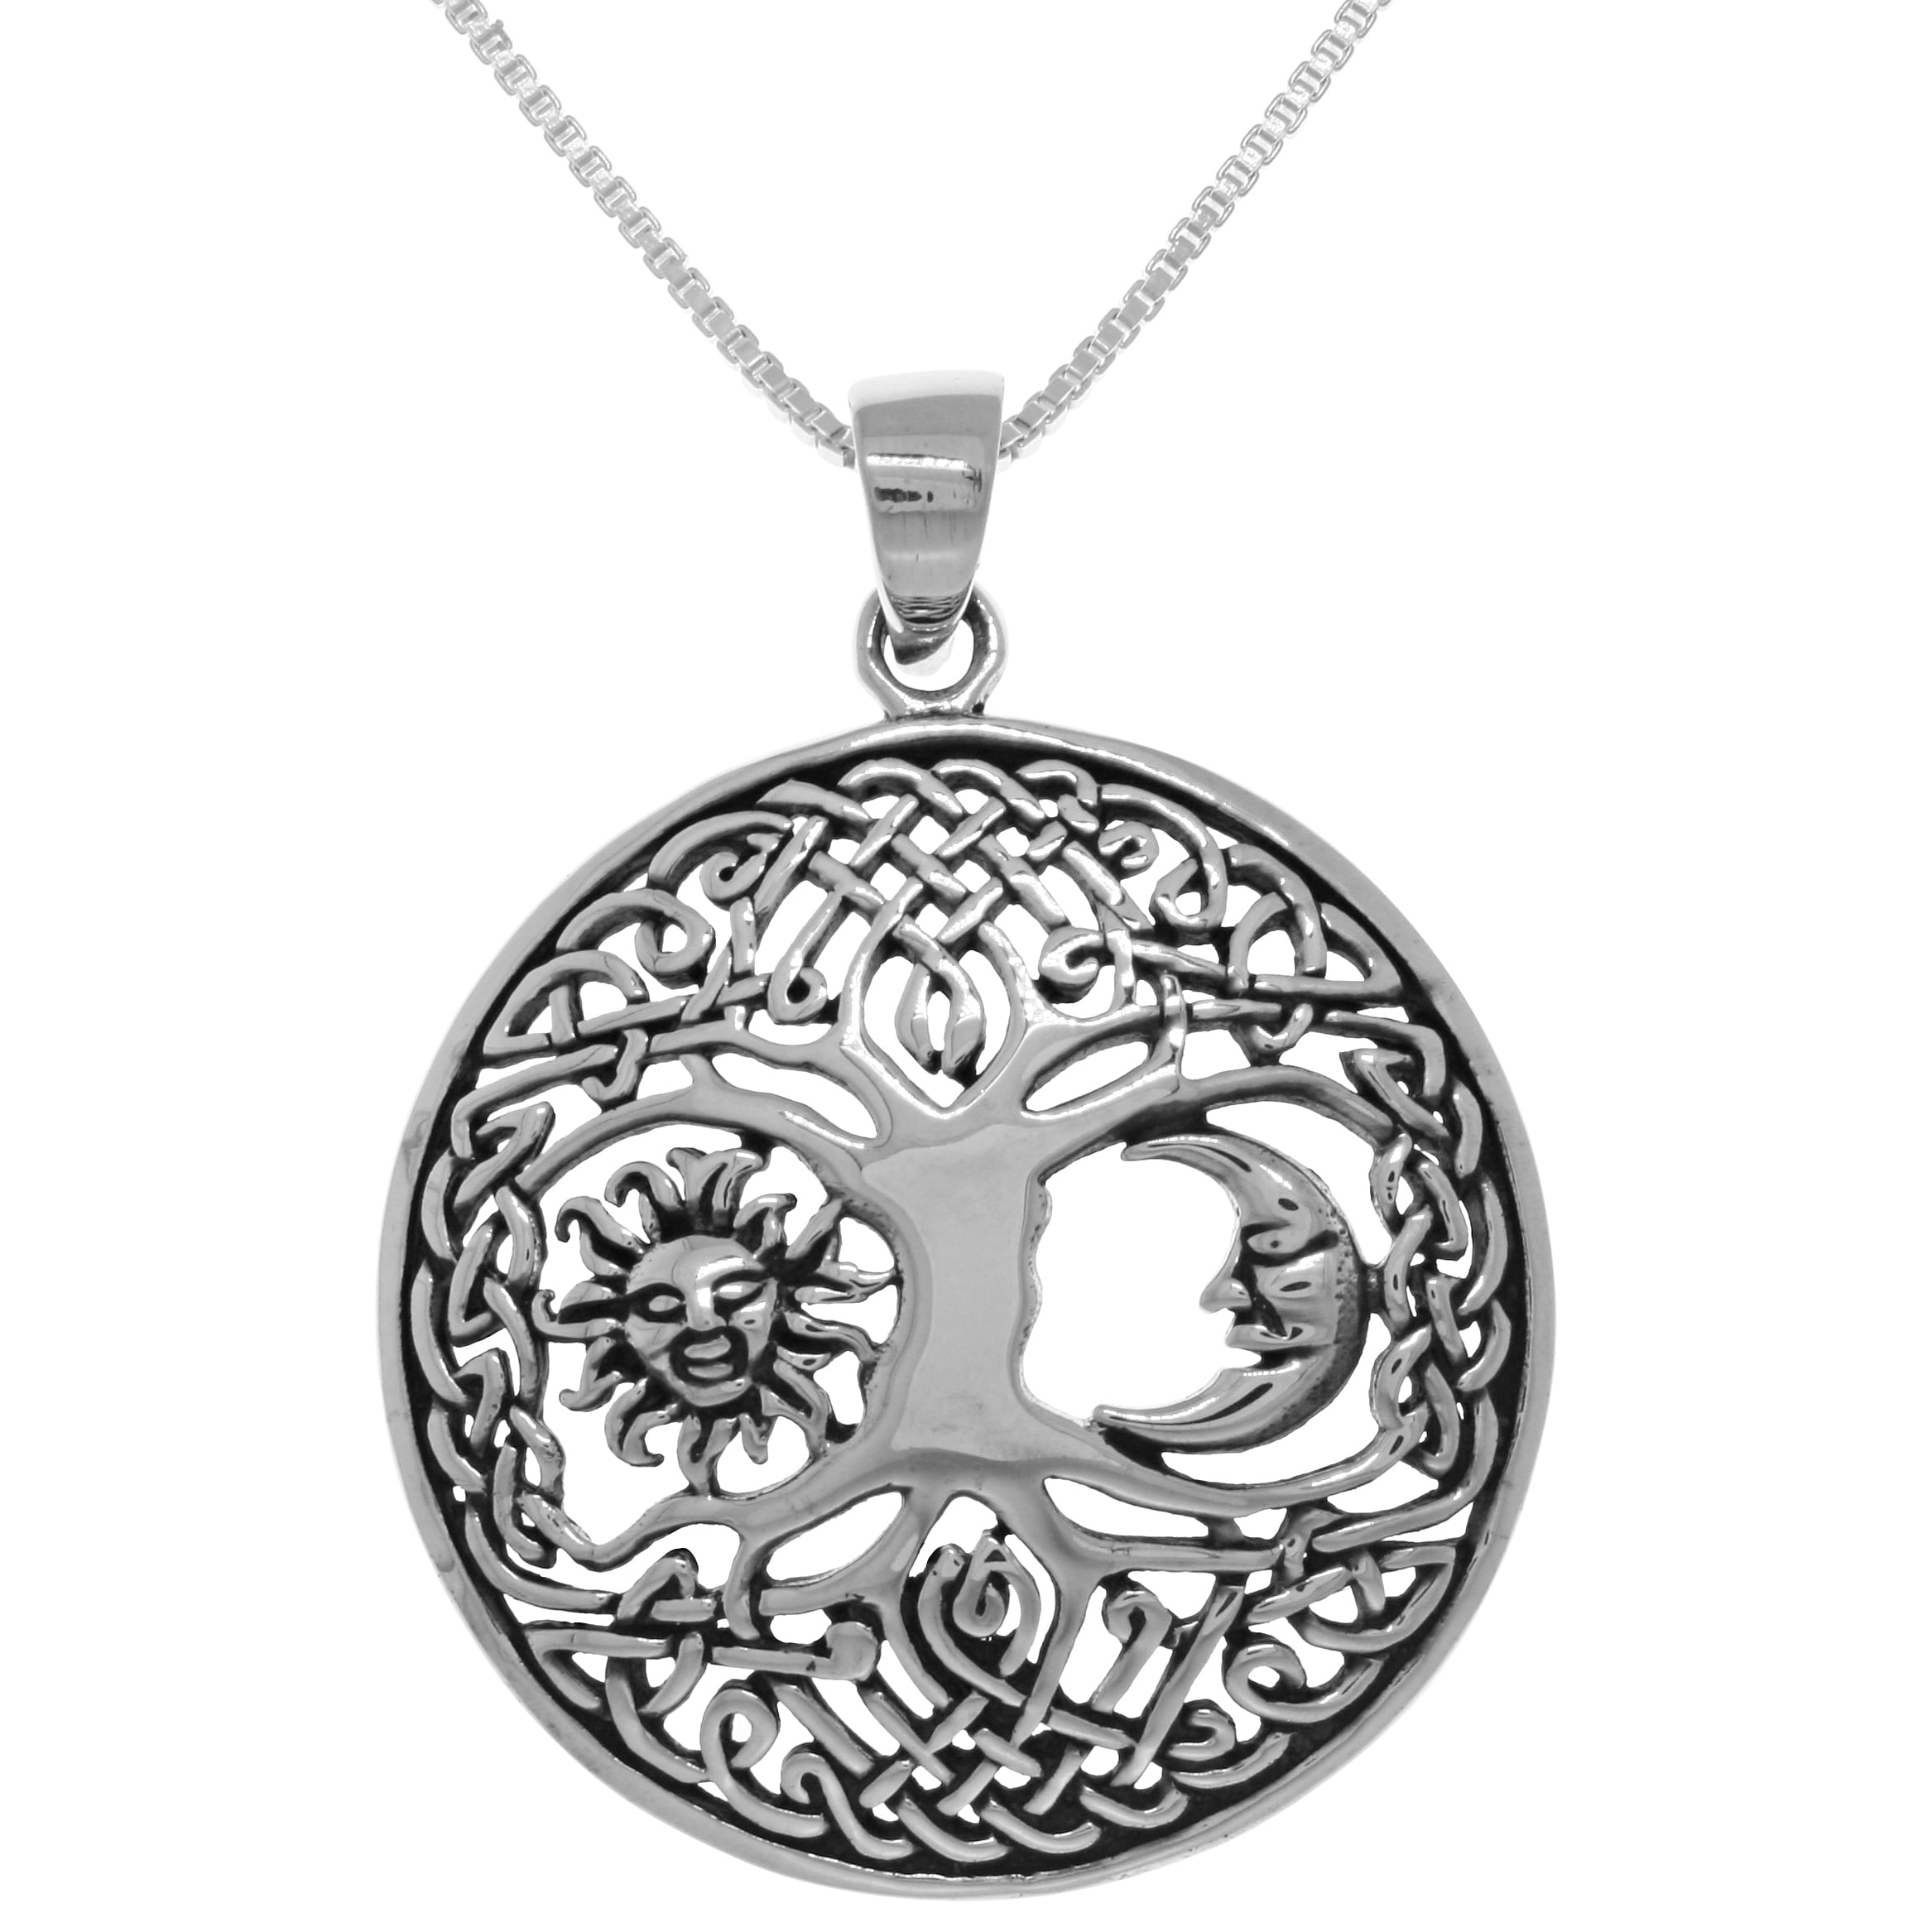 pendant abs schwartz silver by stone moon product allen necklace in jewelry sun accented gallery